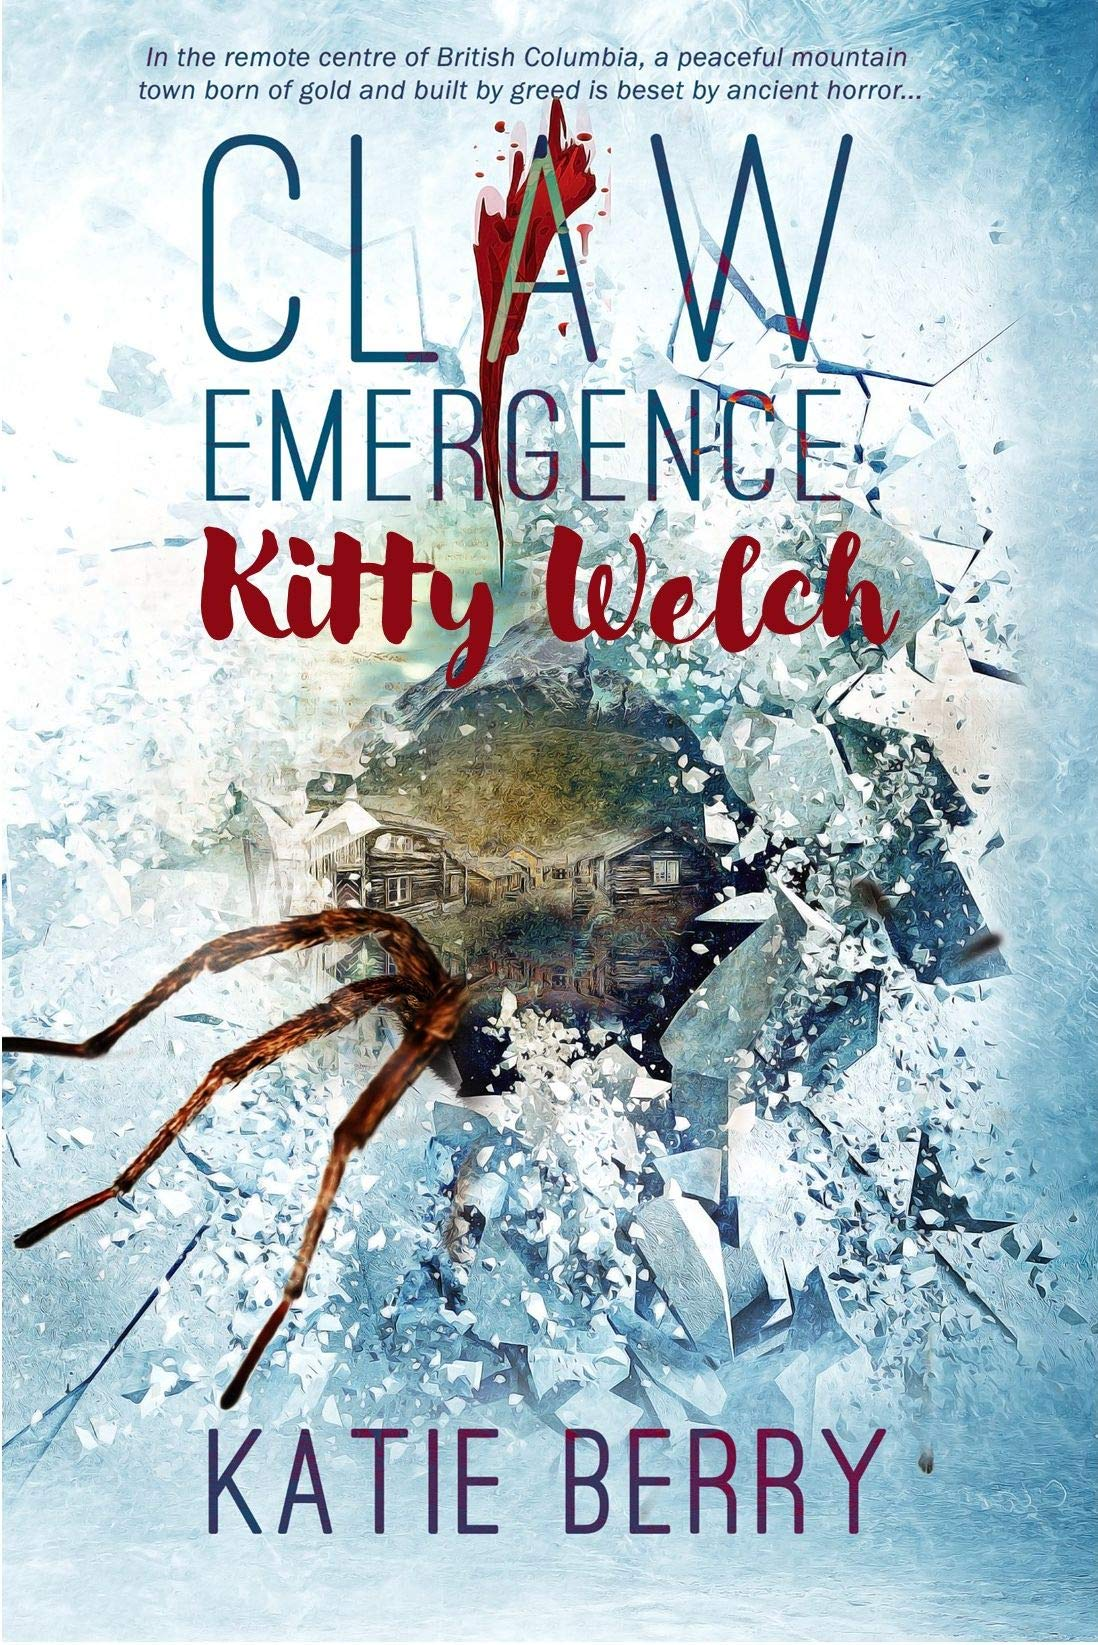 CLAW Emergence - Kitty Welch: Tales from Lawless - A Western Horror Thriller Novelette